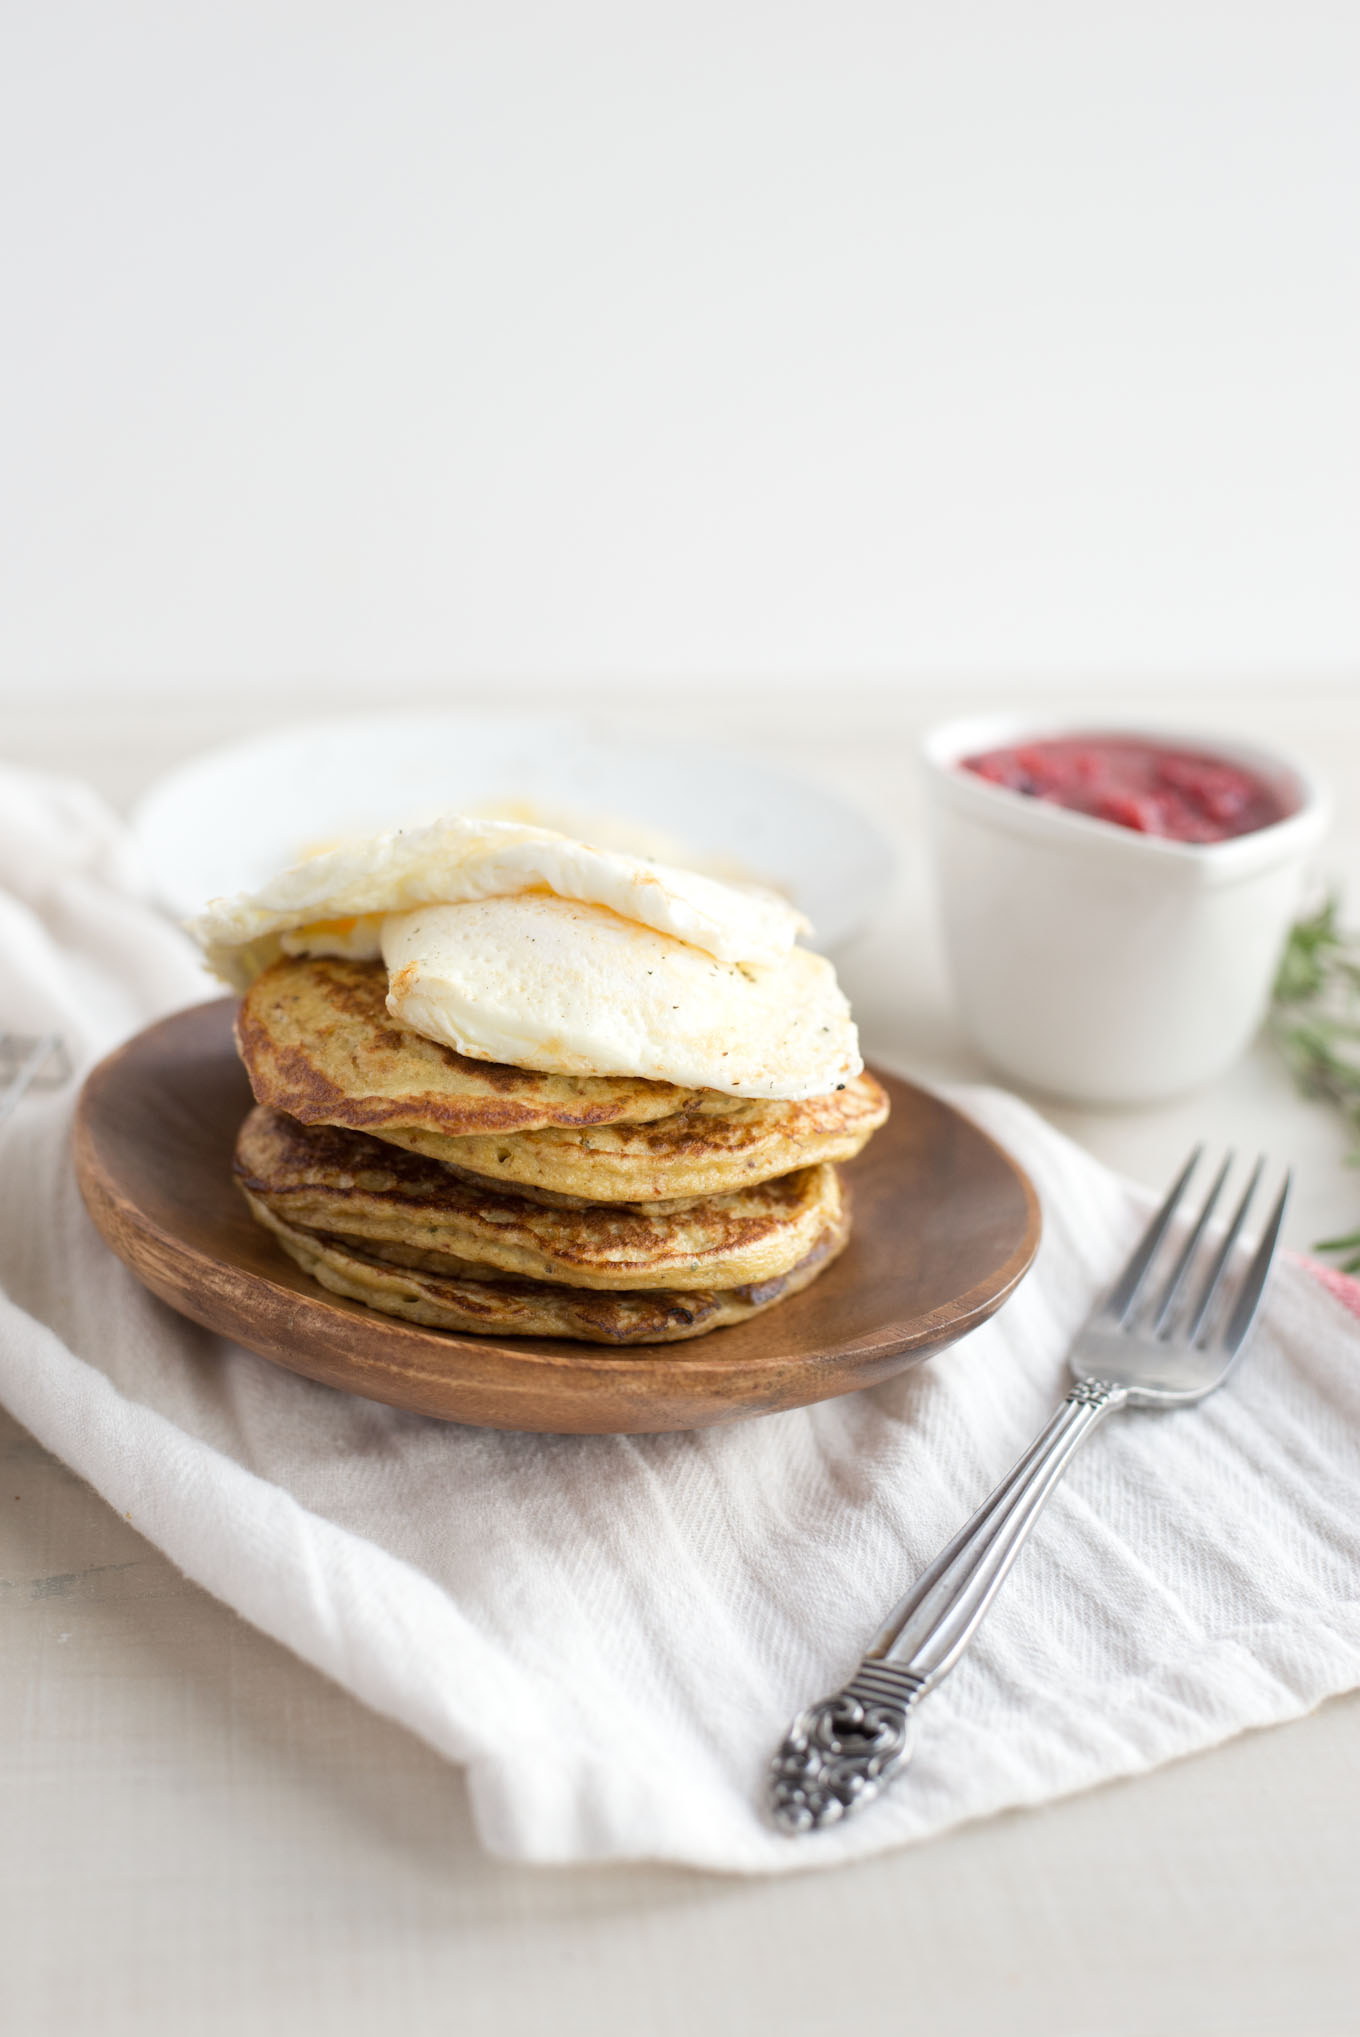 Quick 5 minute blender pancakes with bacon and cheddar. Need I say more?